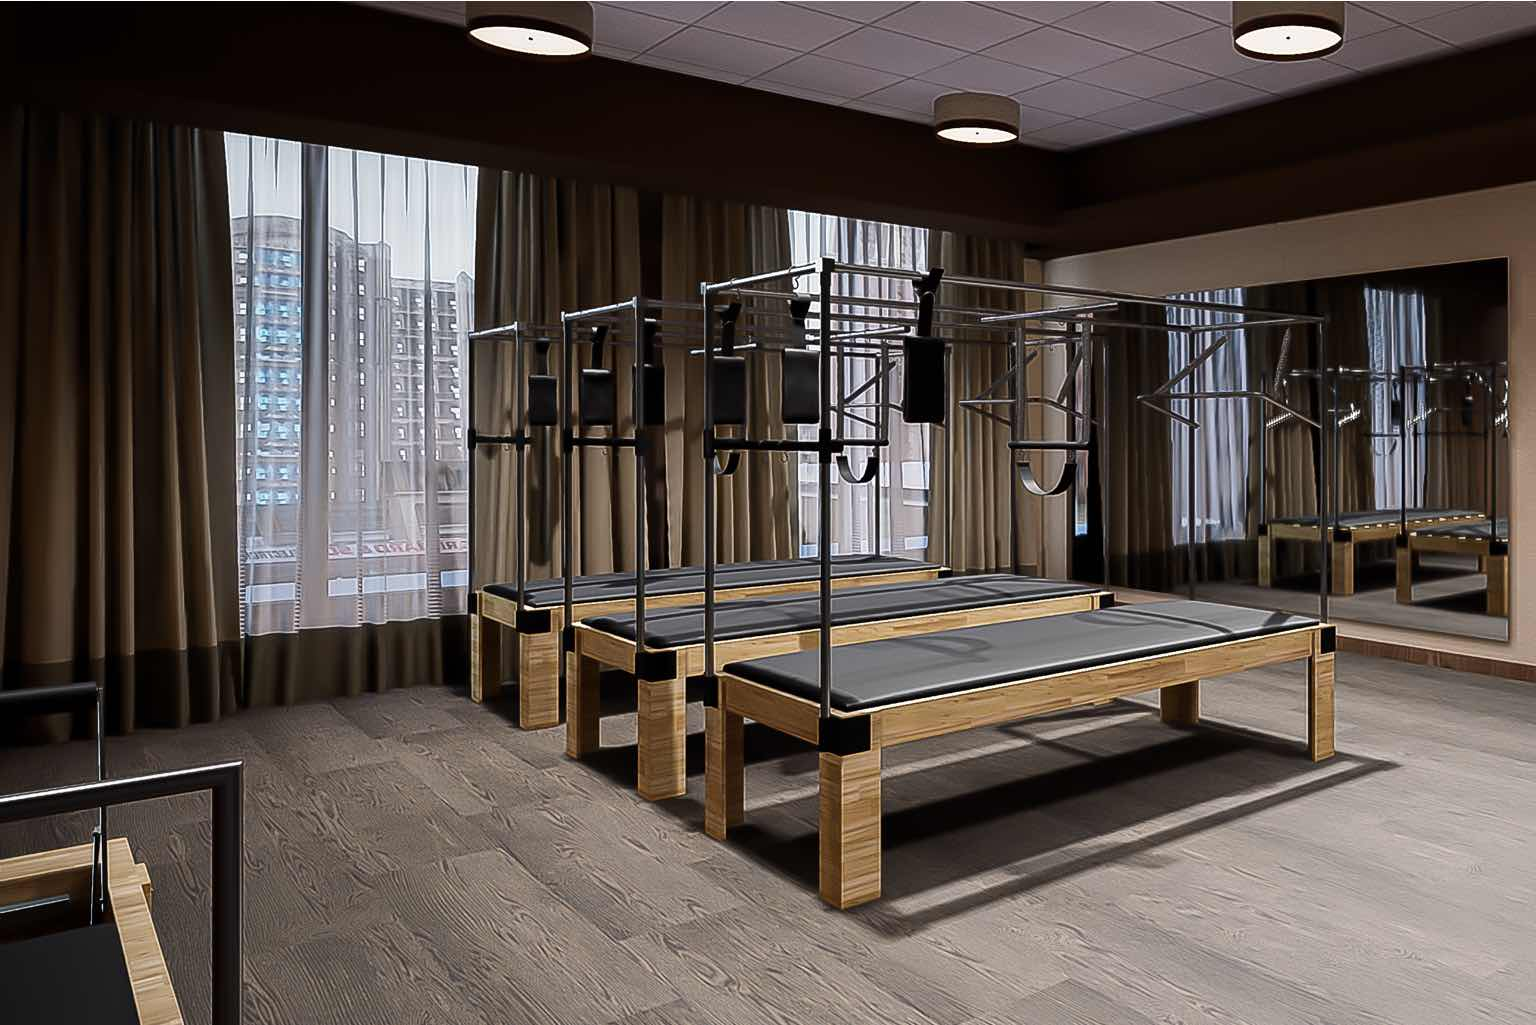 Our dedicated Pilates studio features the very best reformers, chairs, barrels and more.